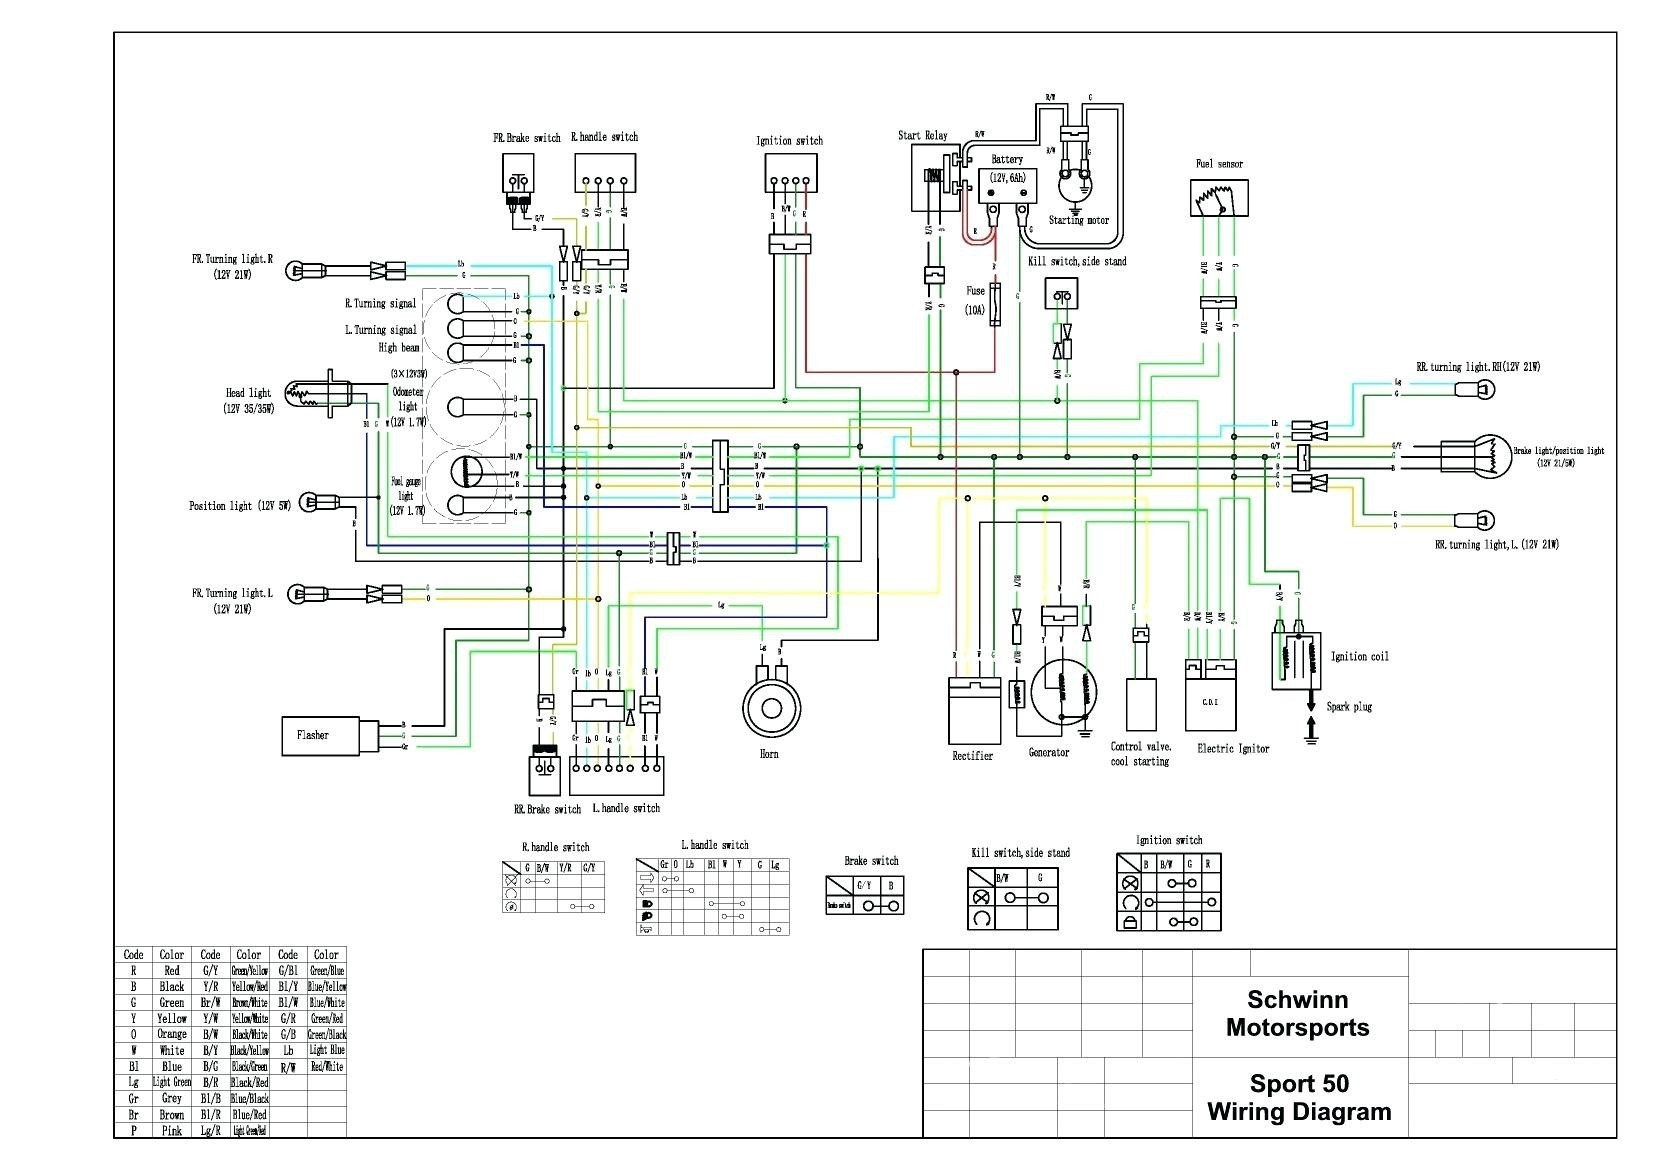 hight resolution of wiring diagram for tao tao 110cc 4 wheeler wiring diagram chinese 4 wheeler wiring diagram